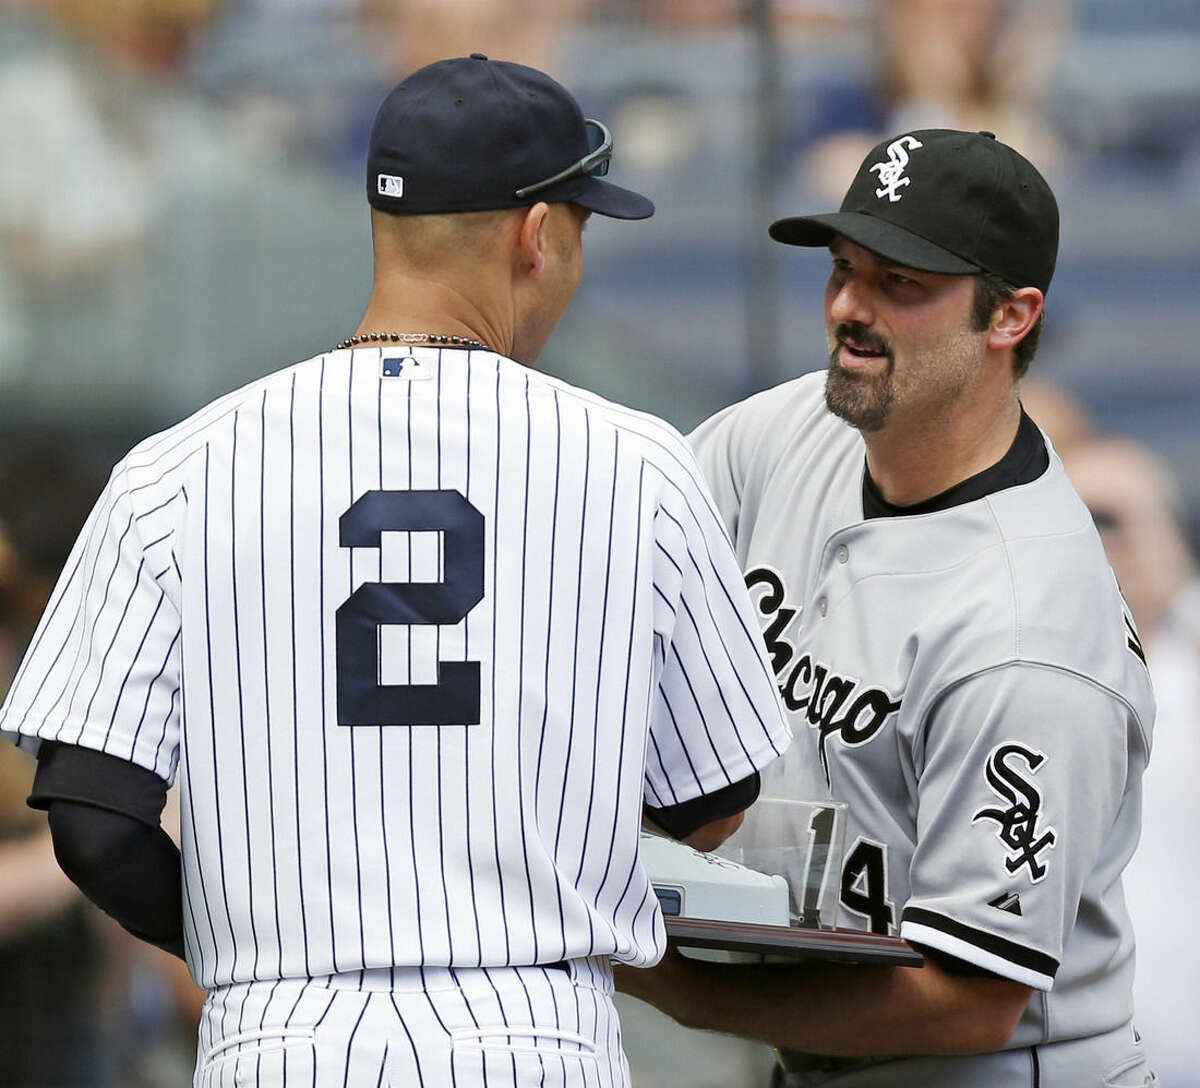 Chicago White Sox designated hitter Paul Konerko accepts an autographed base from New York Yankees shortstop Derek Jeter (2) before their two teams face each other in a baseball game at Yankee Stadium in New York, Sunday, Aug. 24, 2014. (AP Photo/Kathy Willens)